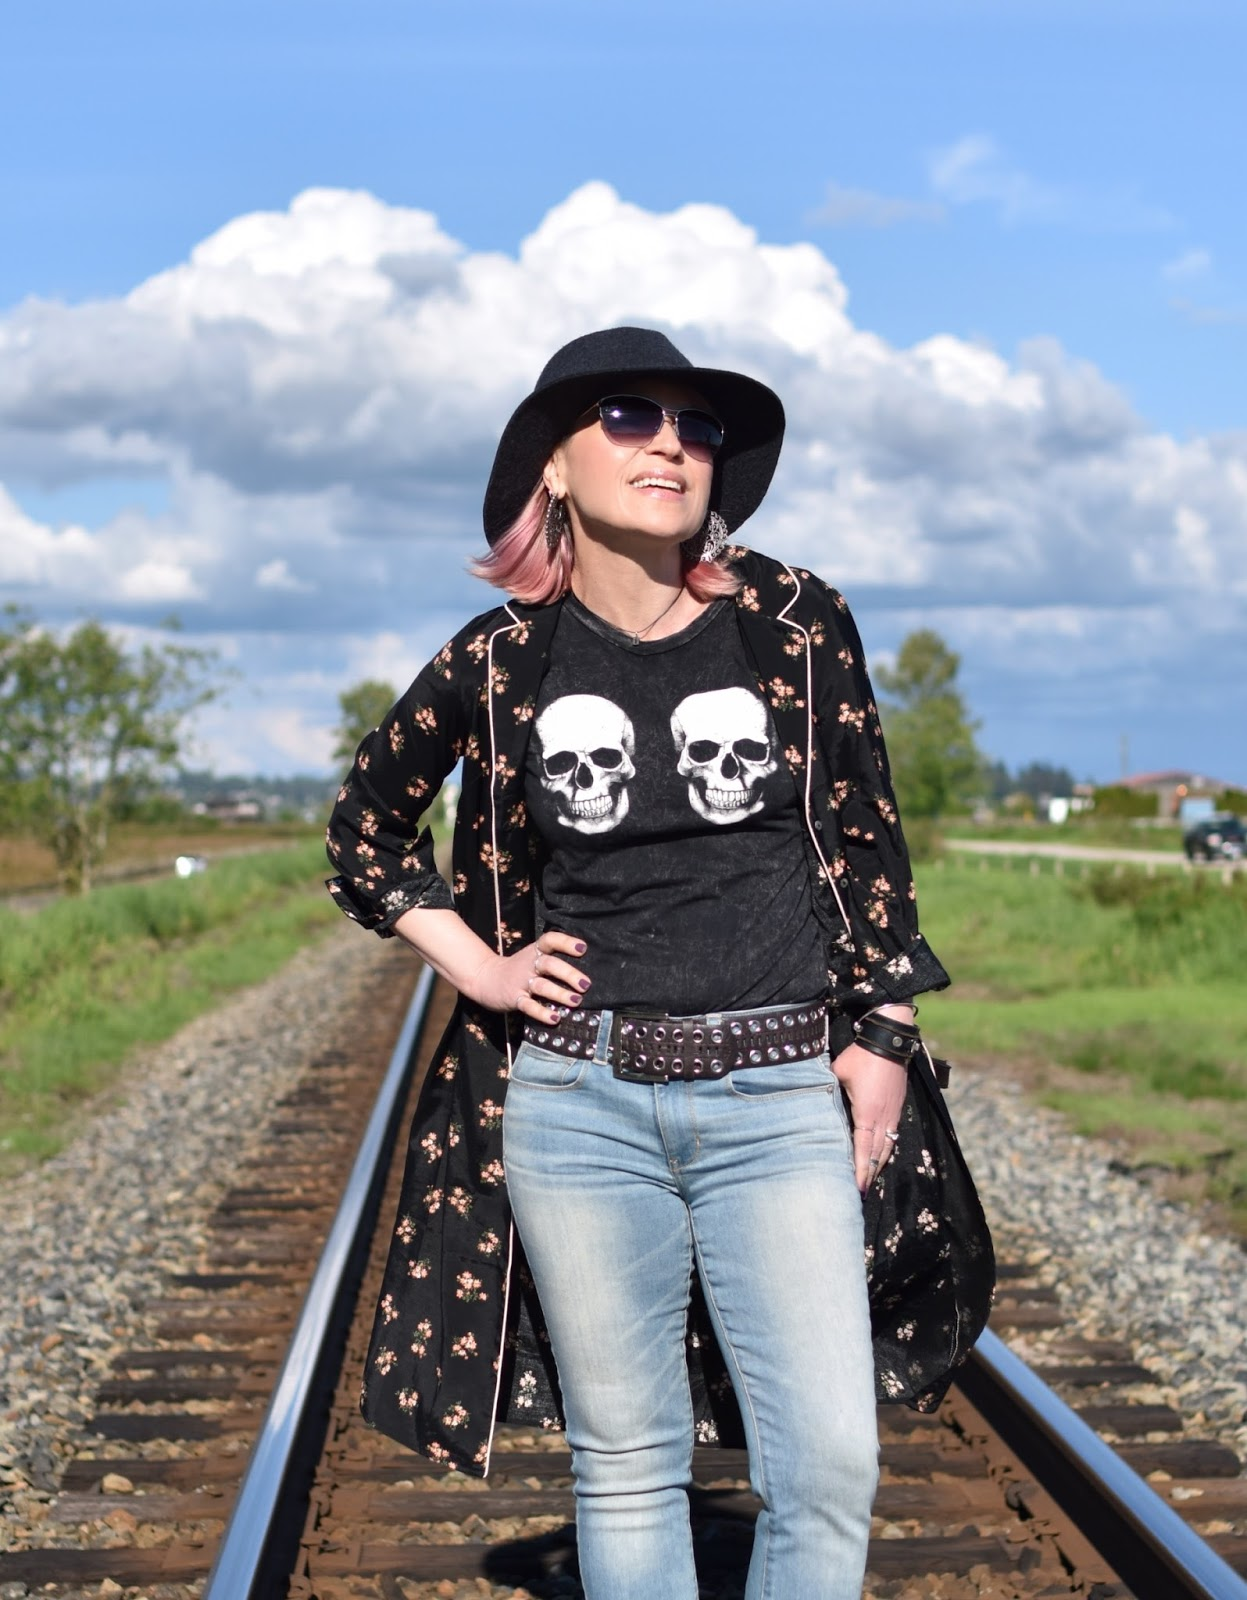 Monika Faulkner outfit inspiration - skull t-shirt, floral shirtdress, jeans, floppy hat